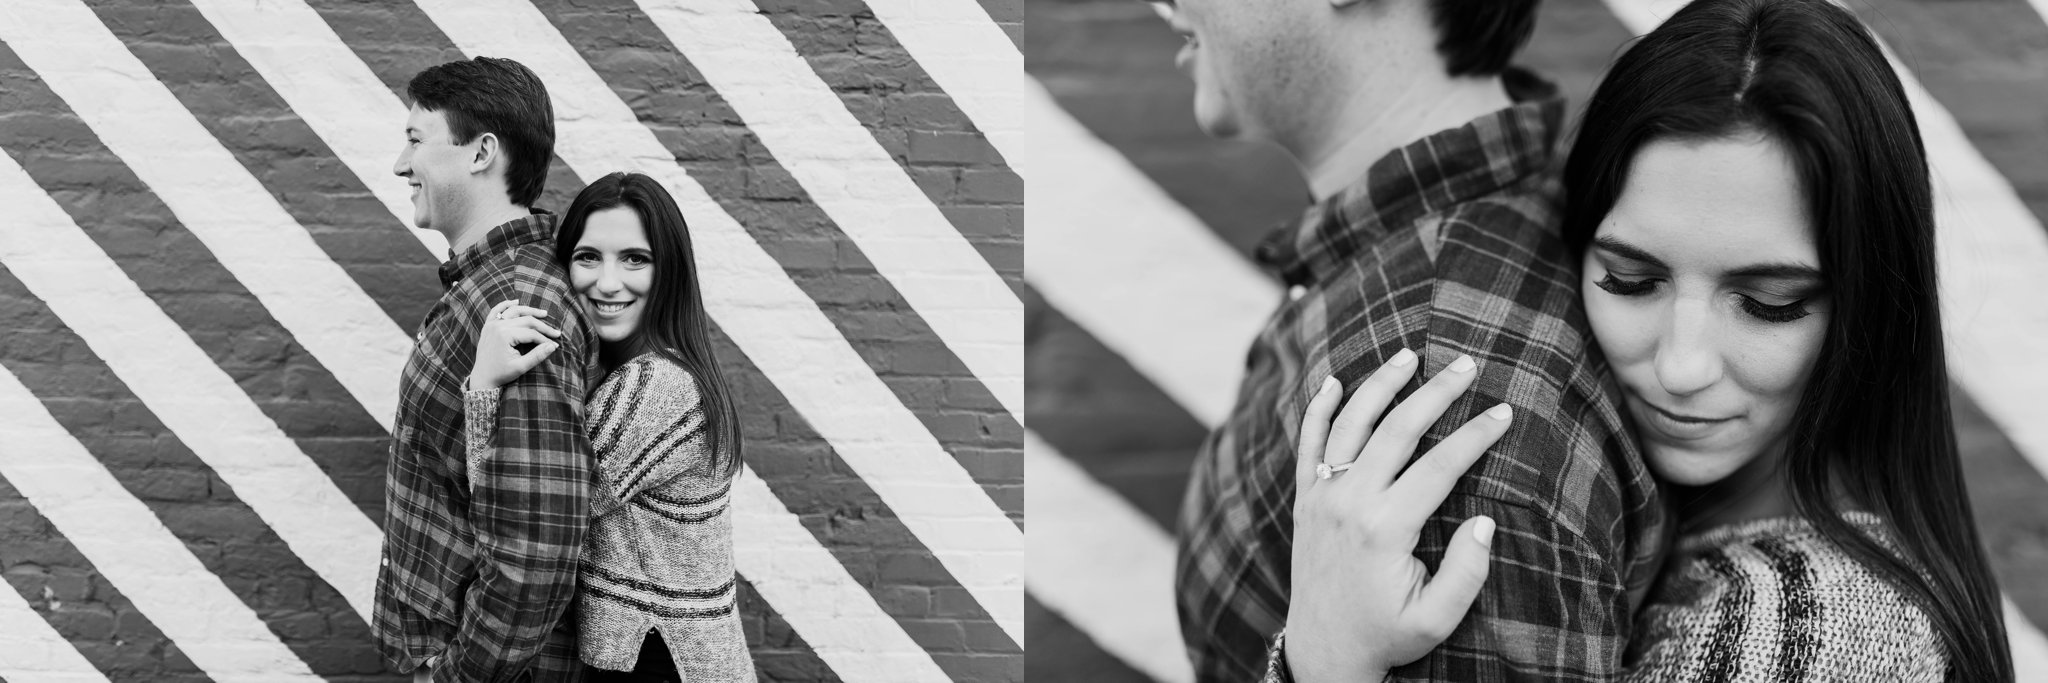 Downtown Memphis Engagement Session_0014.jpg